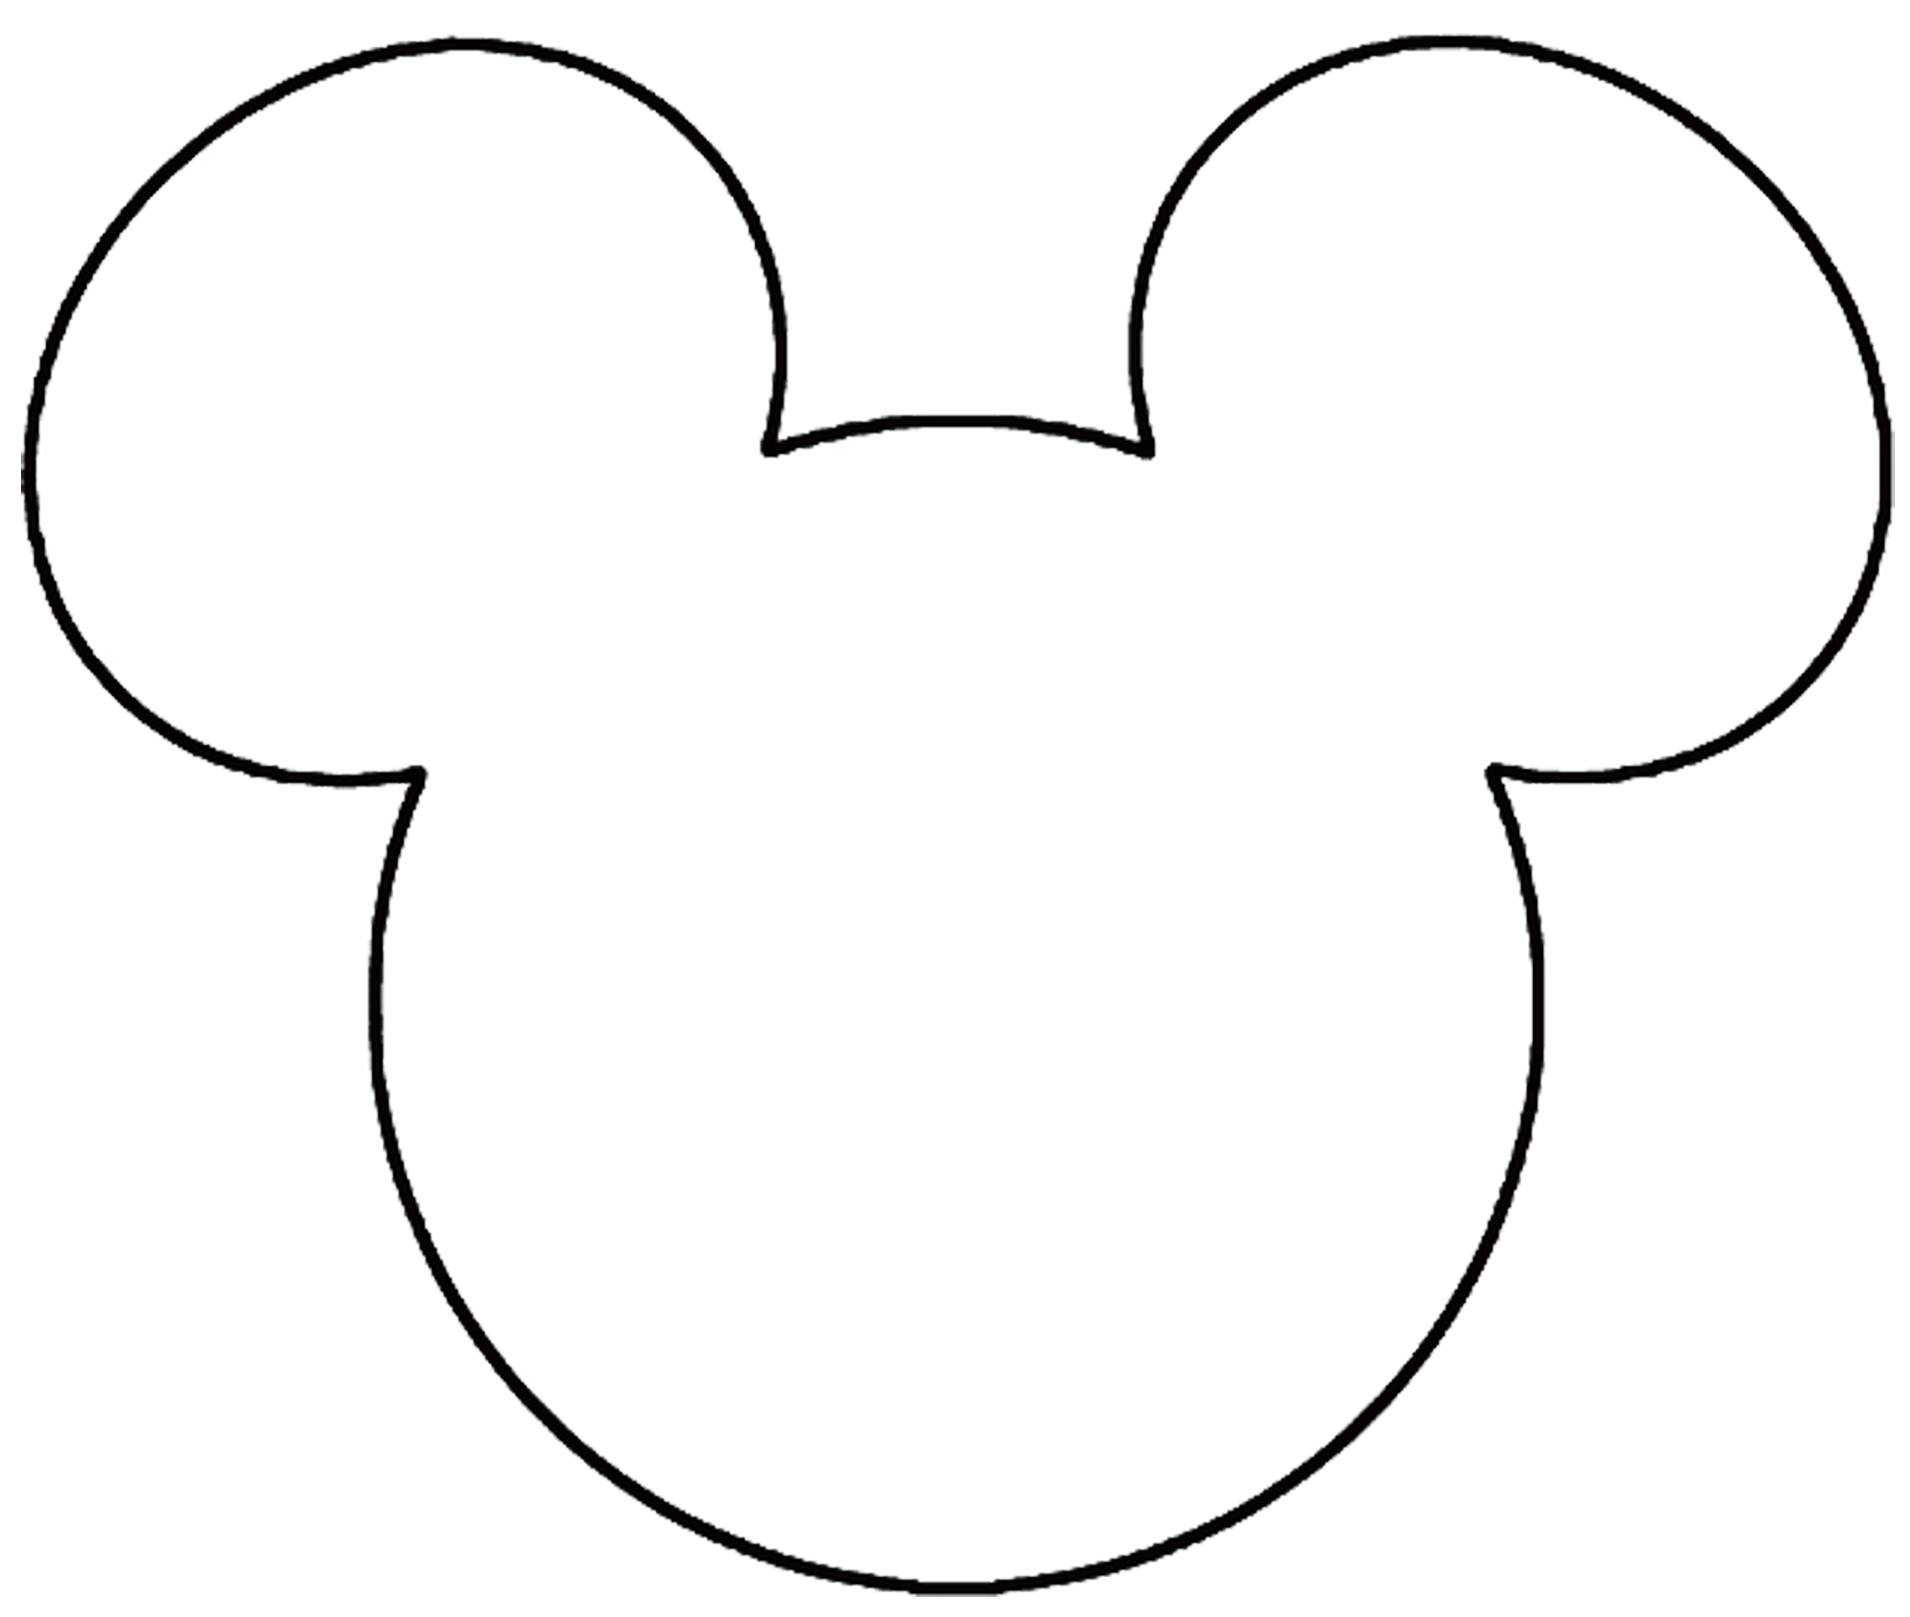 Mickey mouse baby shower banner png. Make bags for homemade